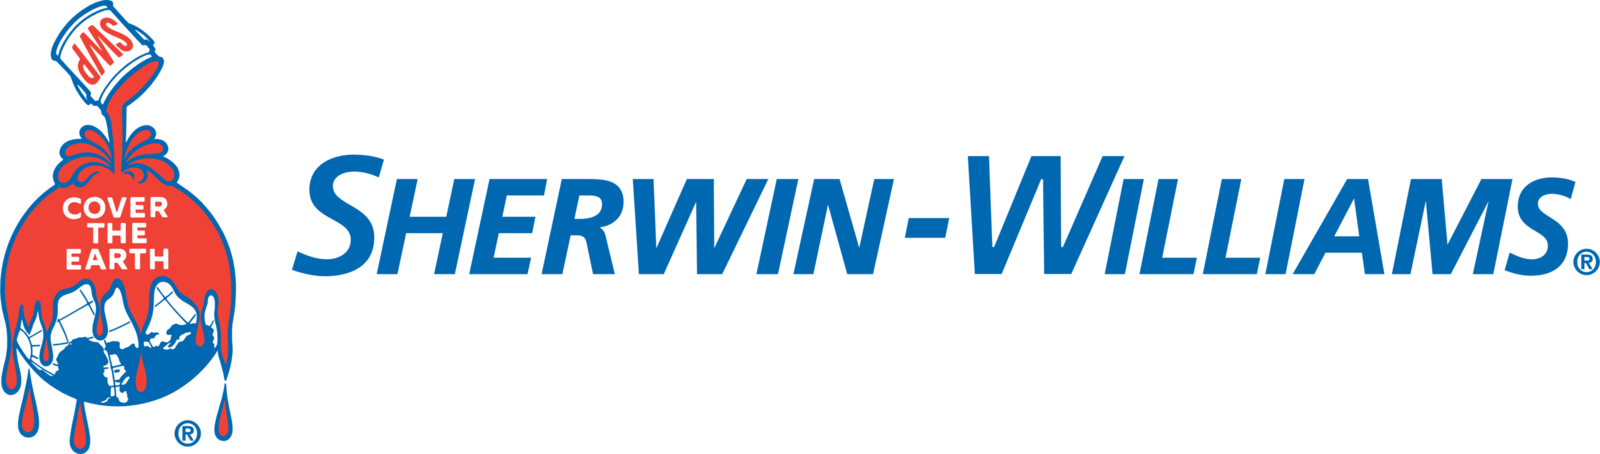 sherwinwilliams_logo